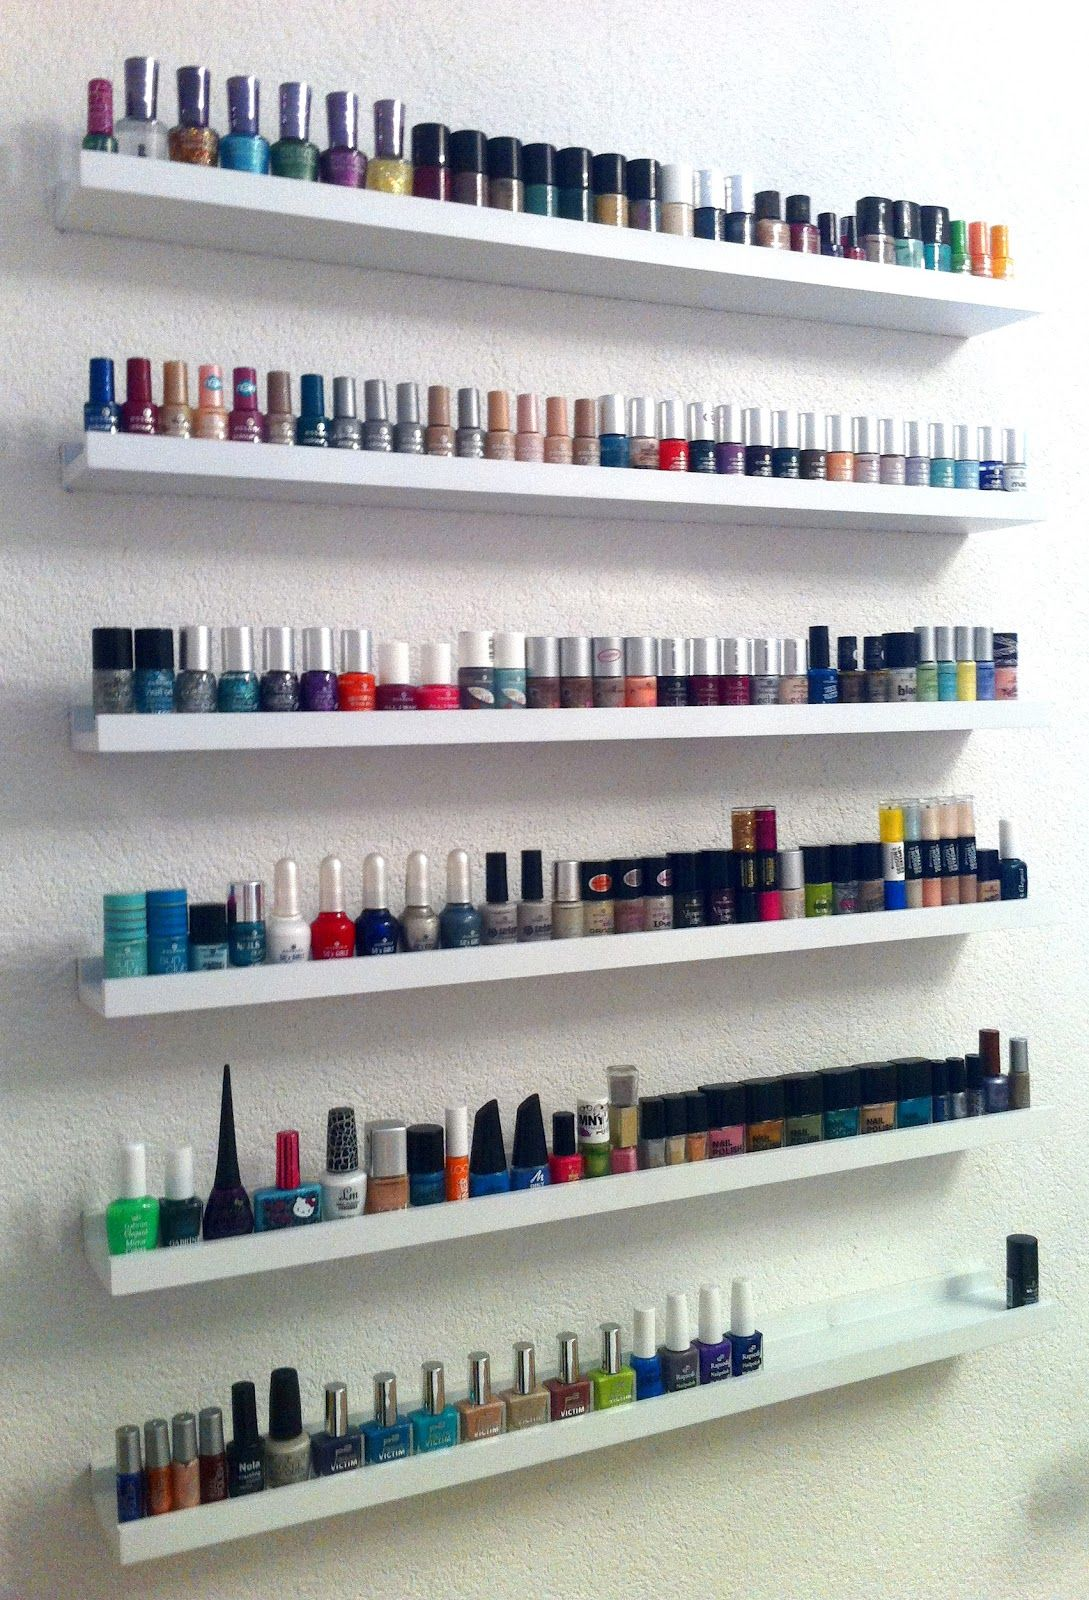 RIBBA - Ikea | Nail spa related | Pinterest | Nagellack aufbewahrung ...